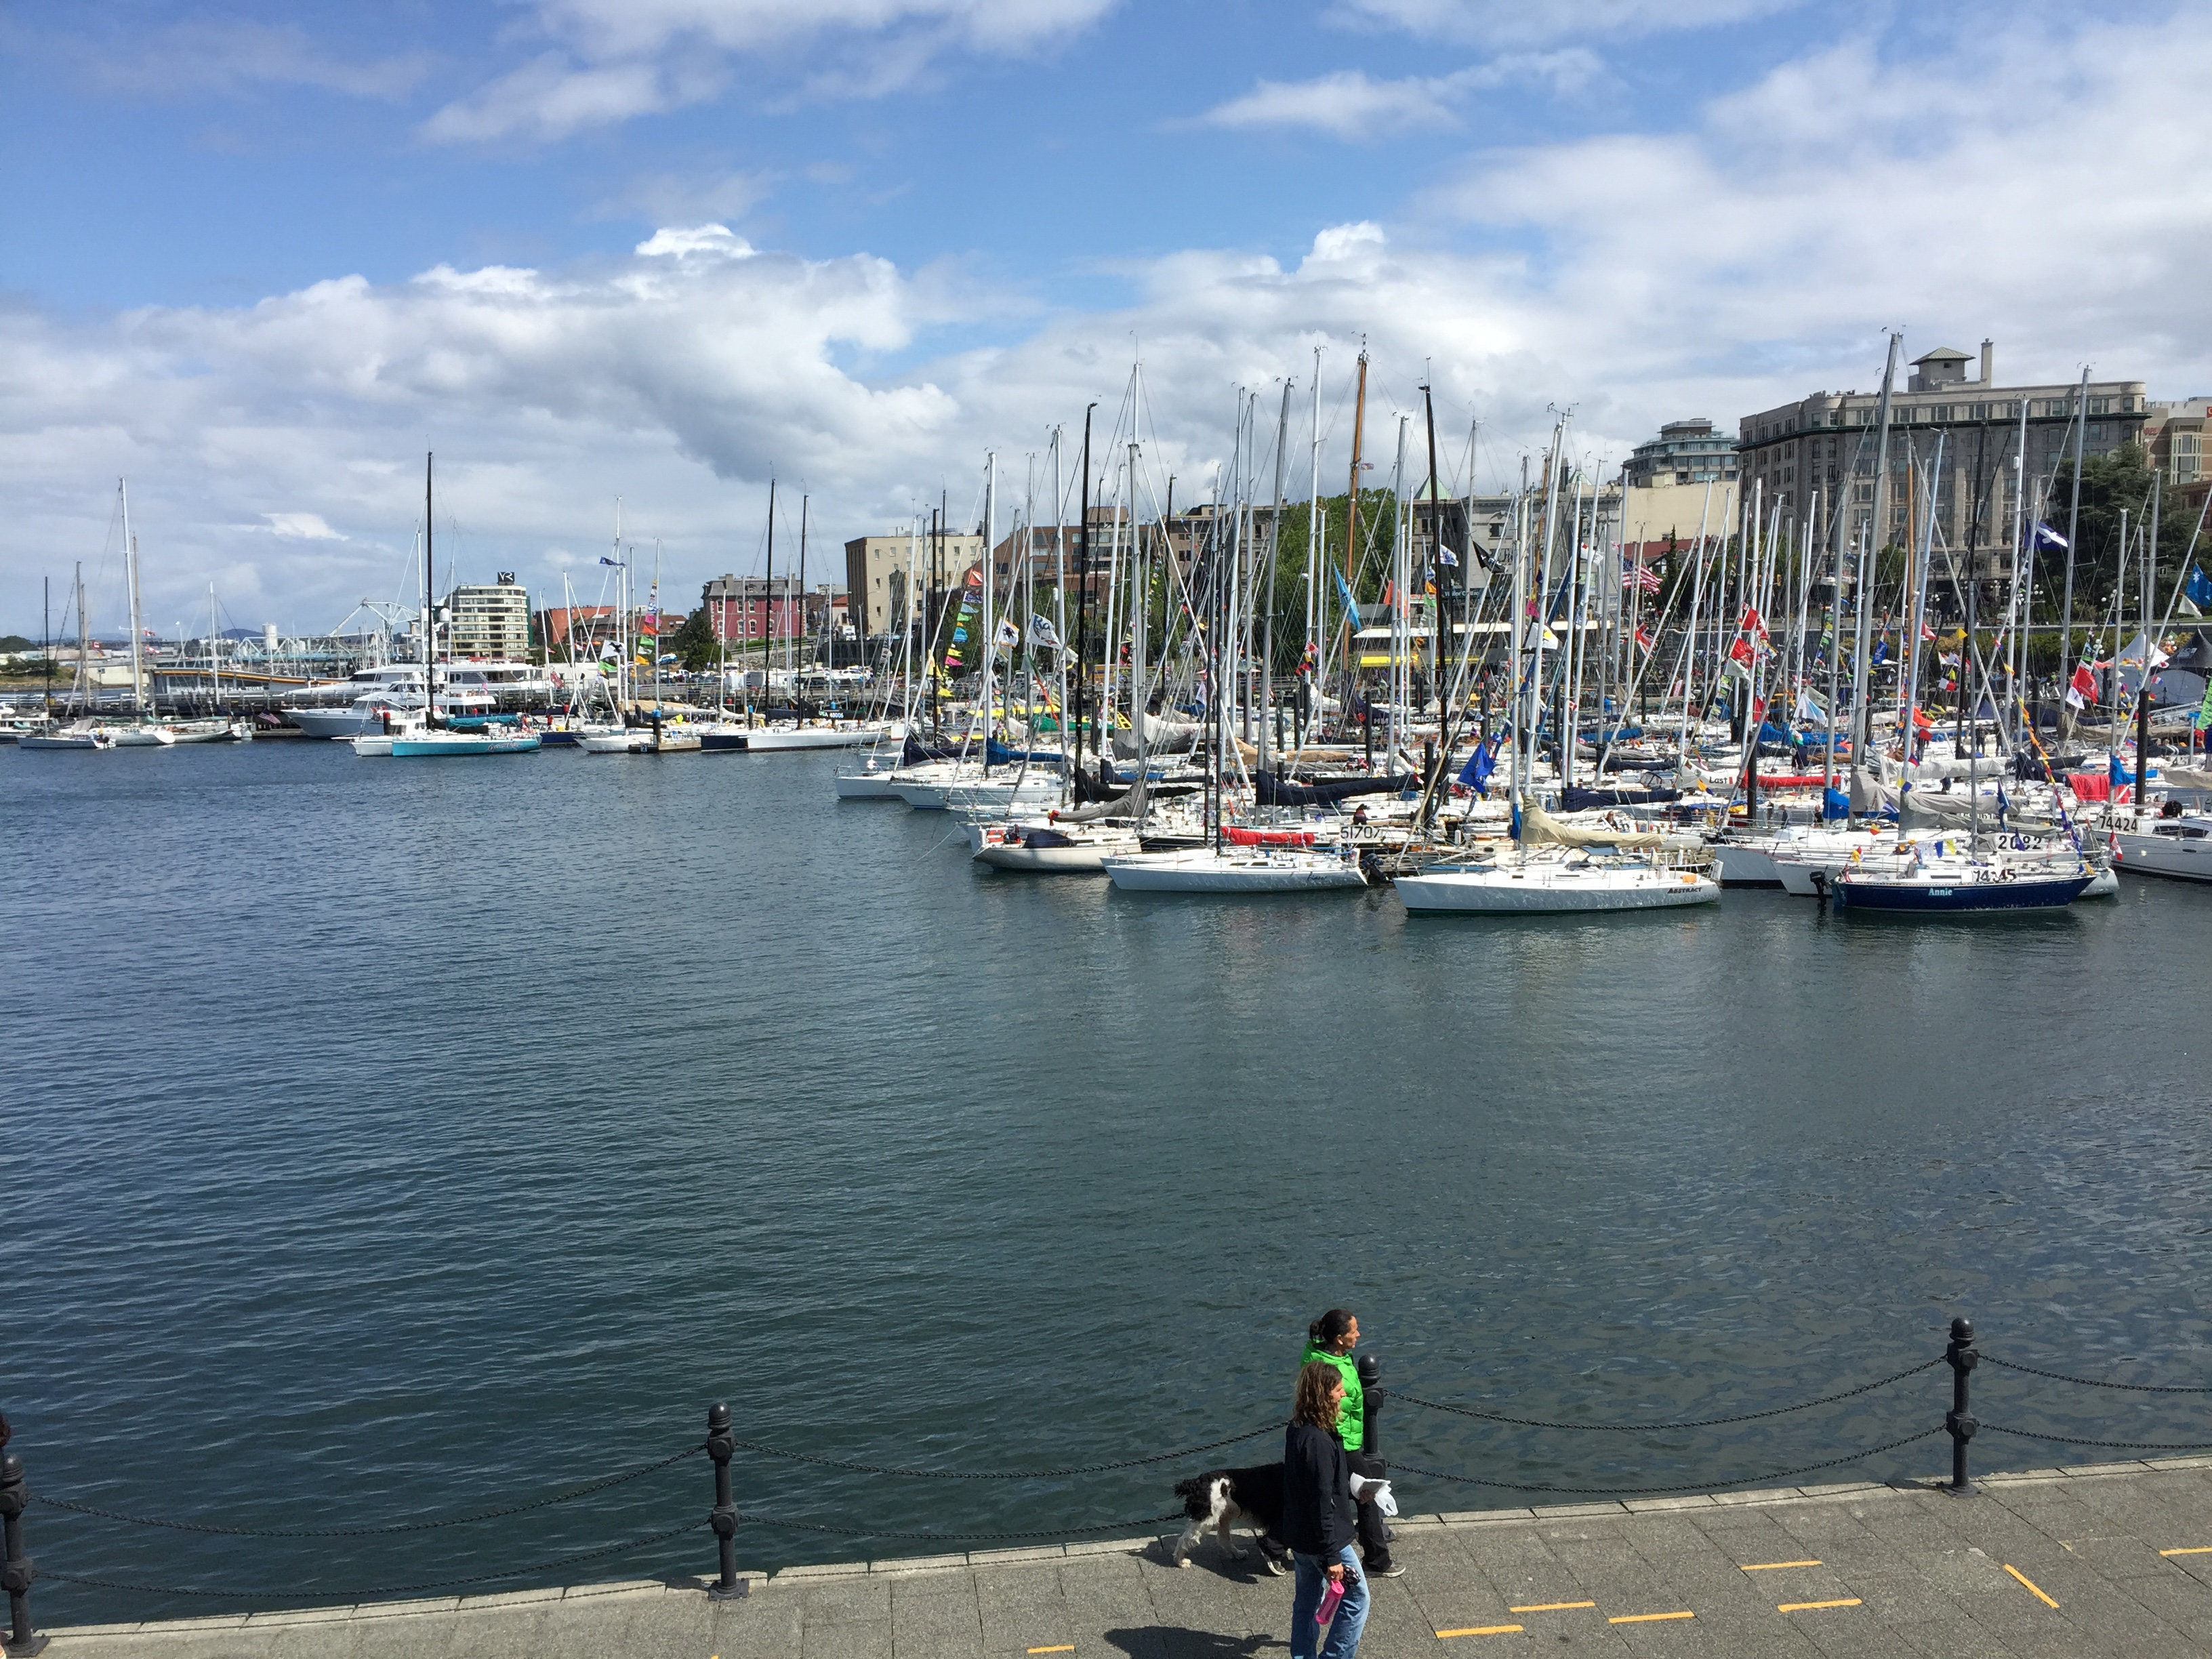 Victoria Inner Habor - packed with Swiftsure boats